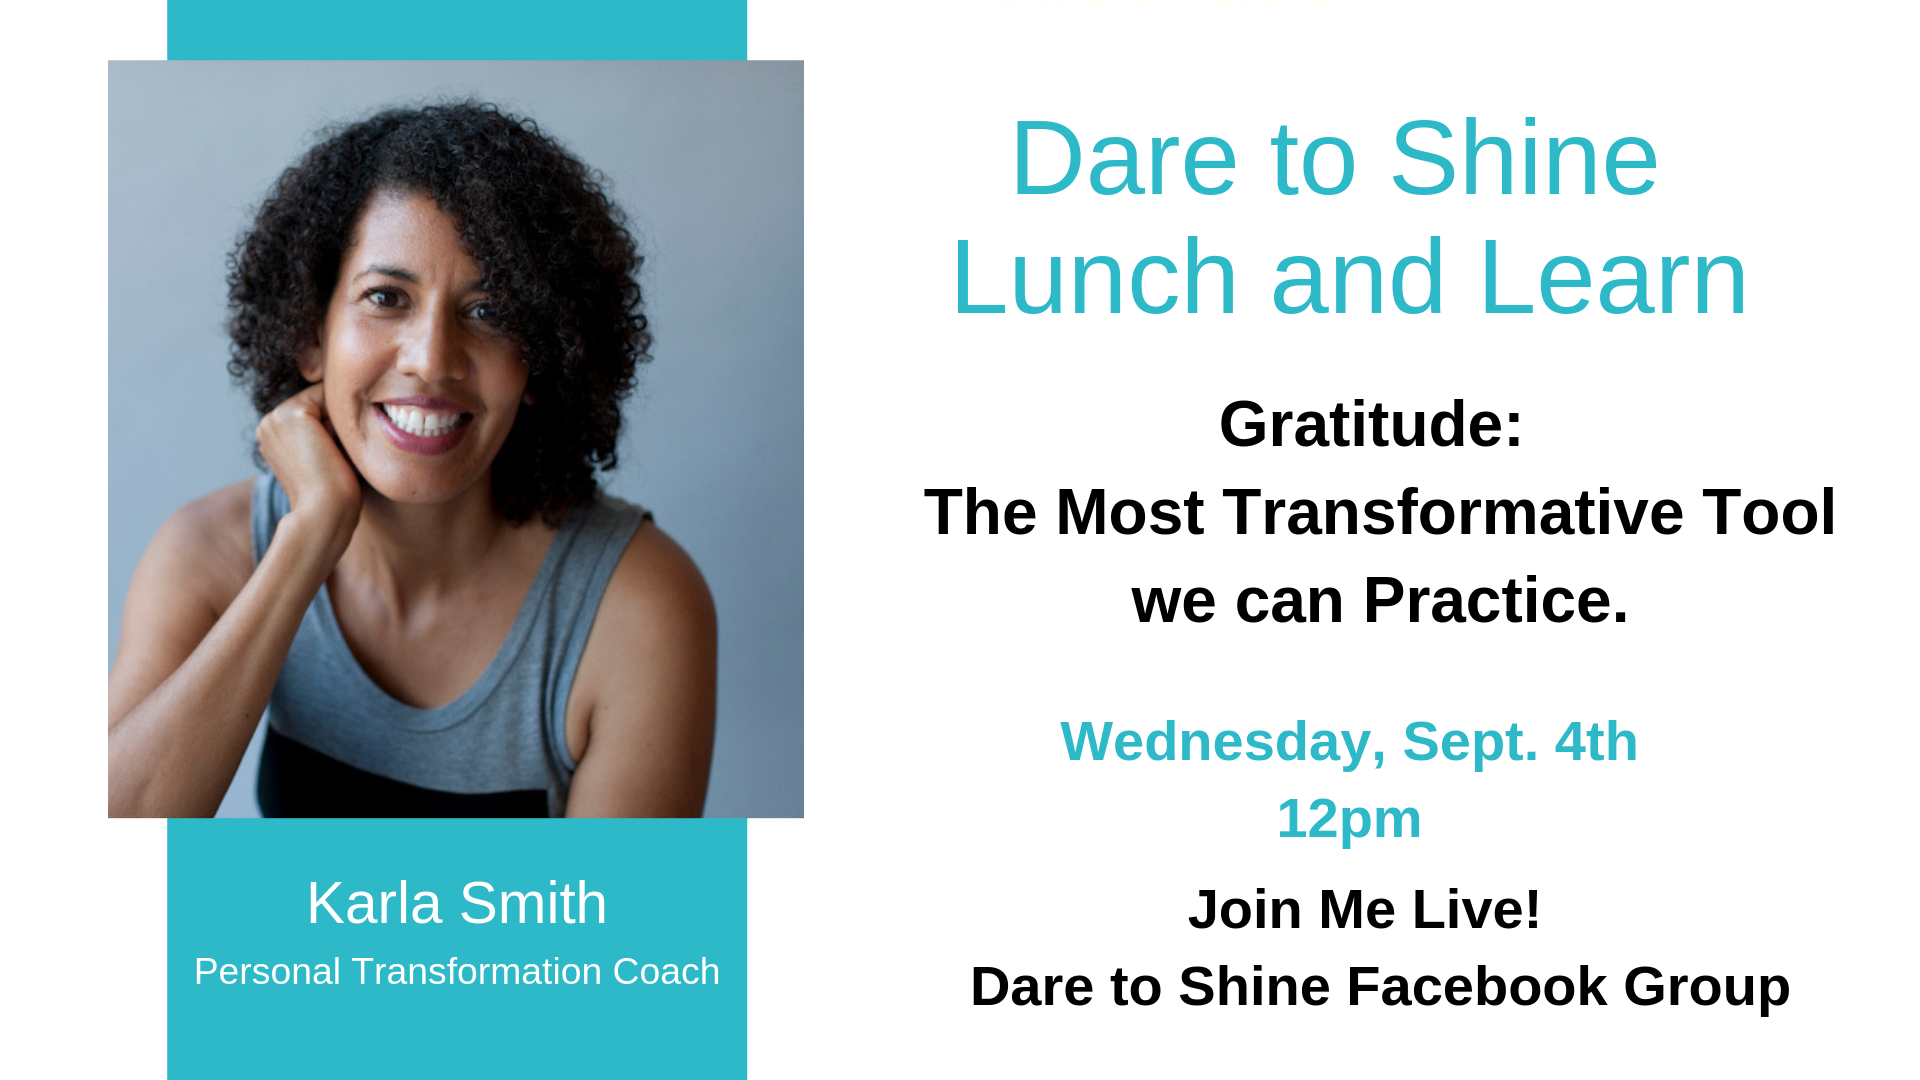 Lunch and Learn Event on Dare to Shine Facebook Group Page, September 4 at 12pm